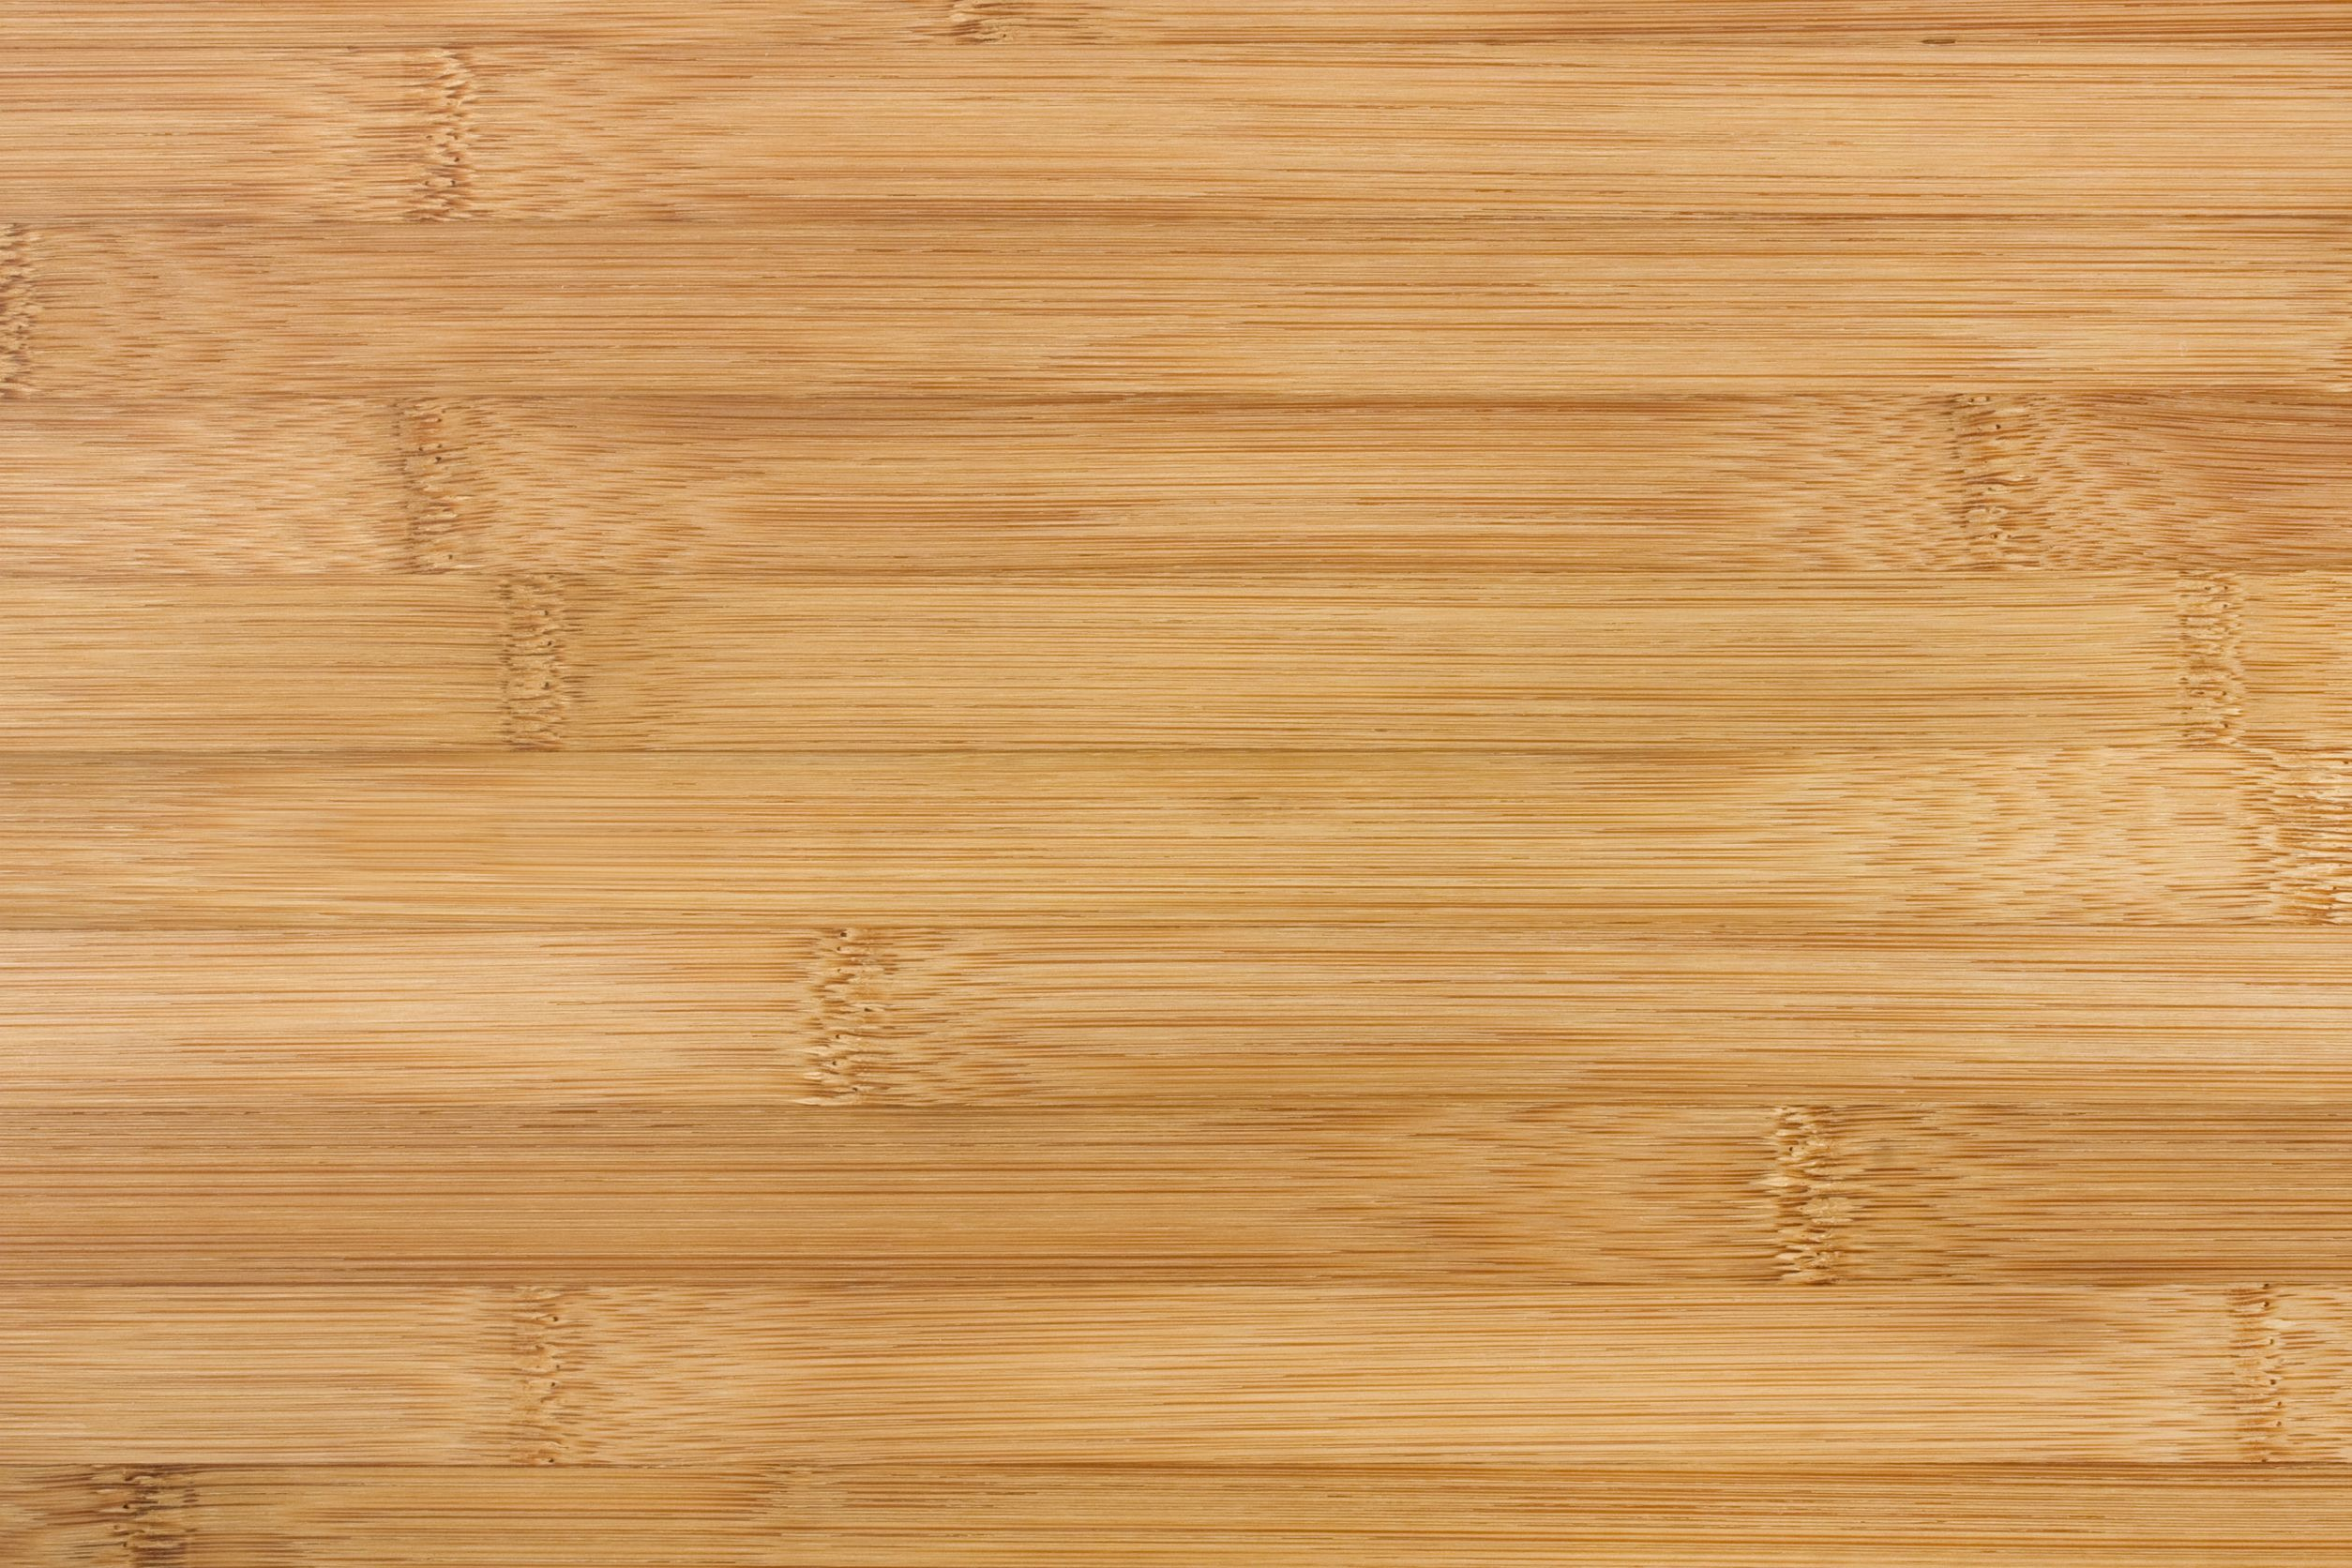 9074647 Bamboo Wood Background Texture Woodfloordoctor Com